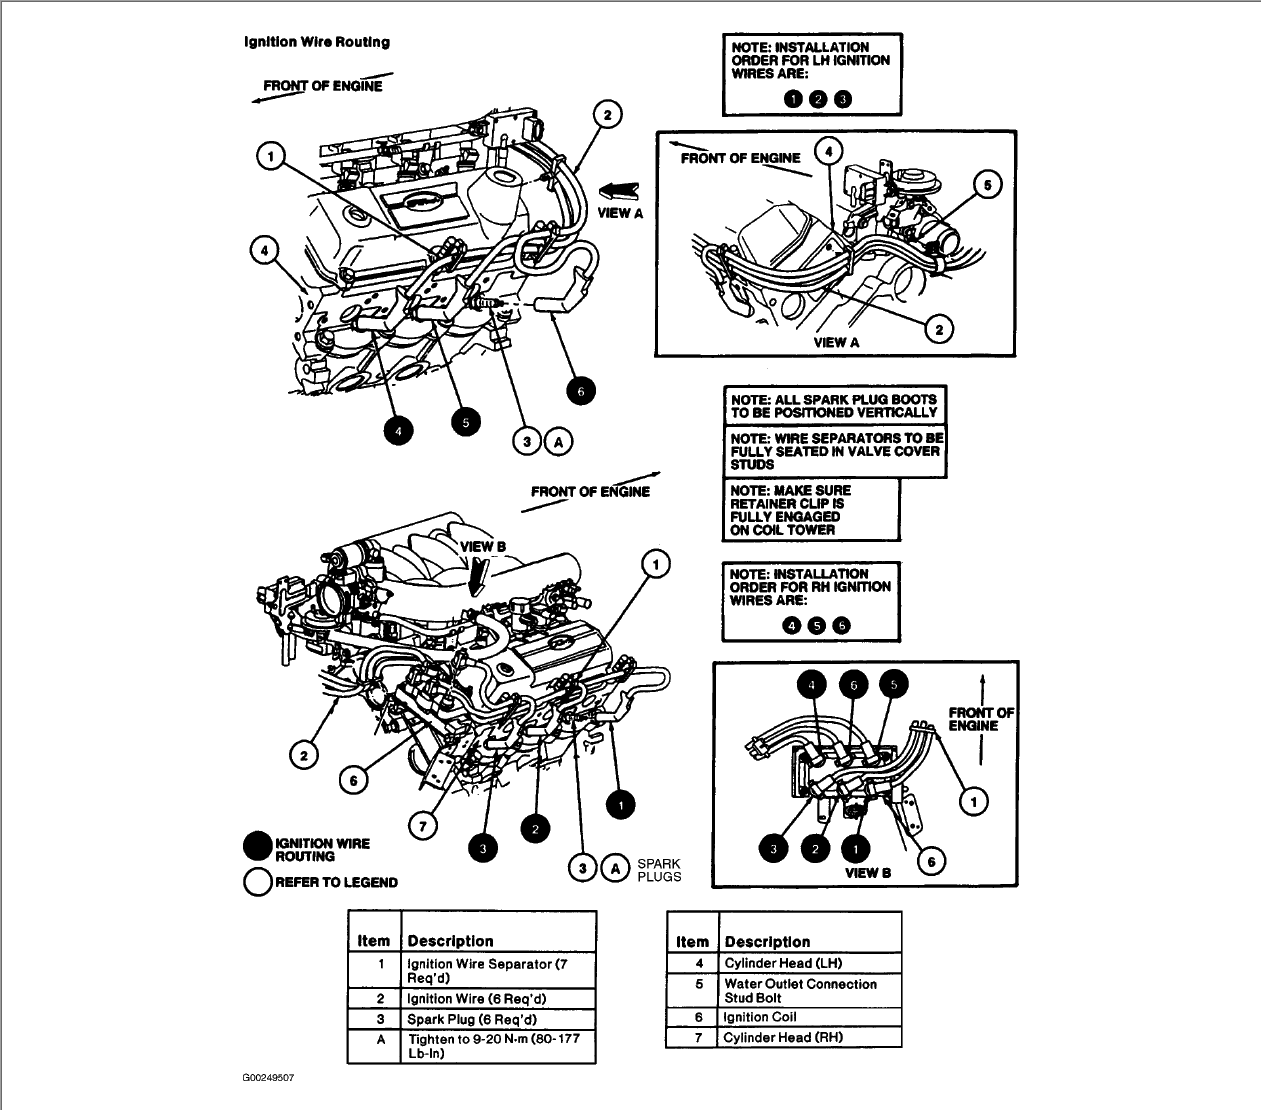 2008 01 13_171528_2008 01 13_170810 i need to know if i could get a diagram of the firing order of a 2003 ford windstar spark plugs wire diagram at gsmx.co